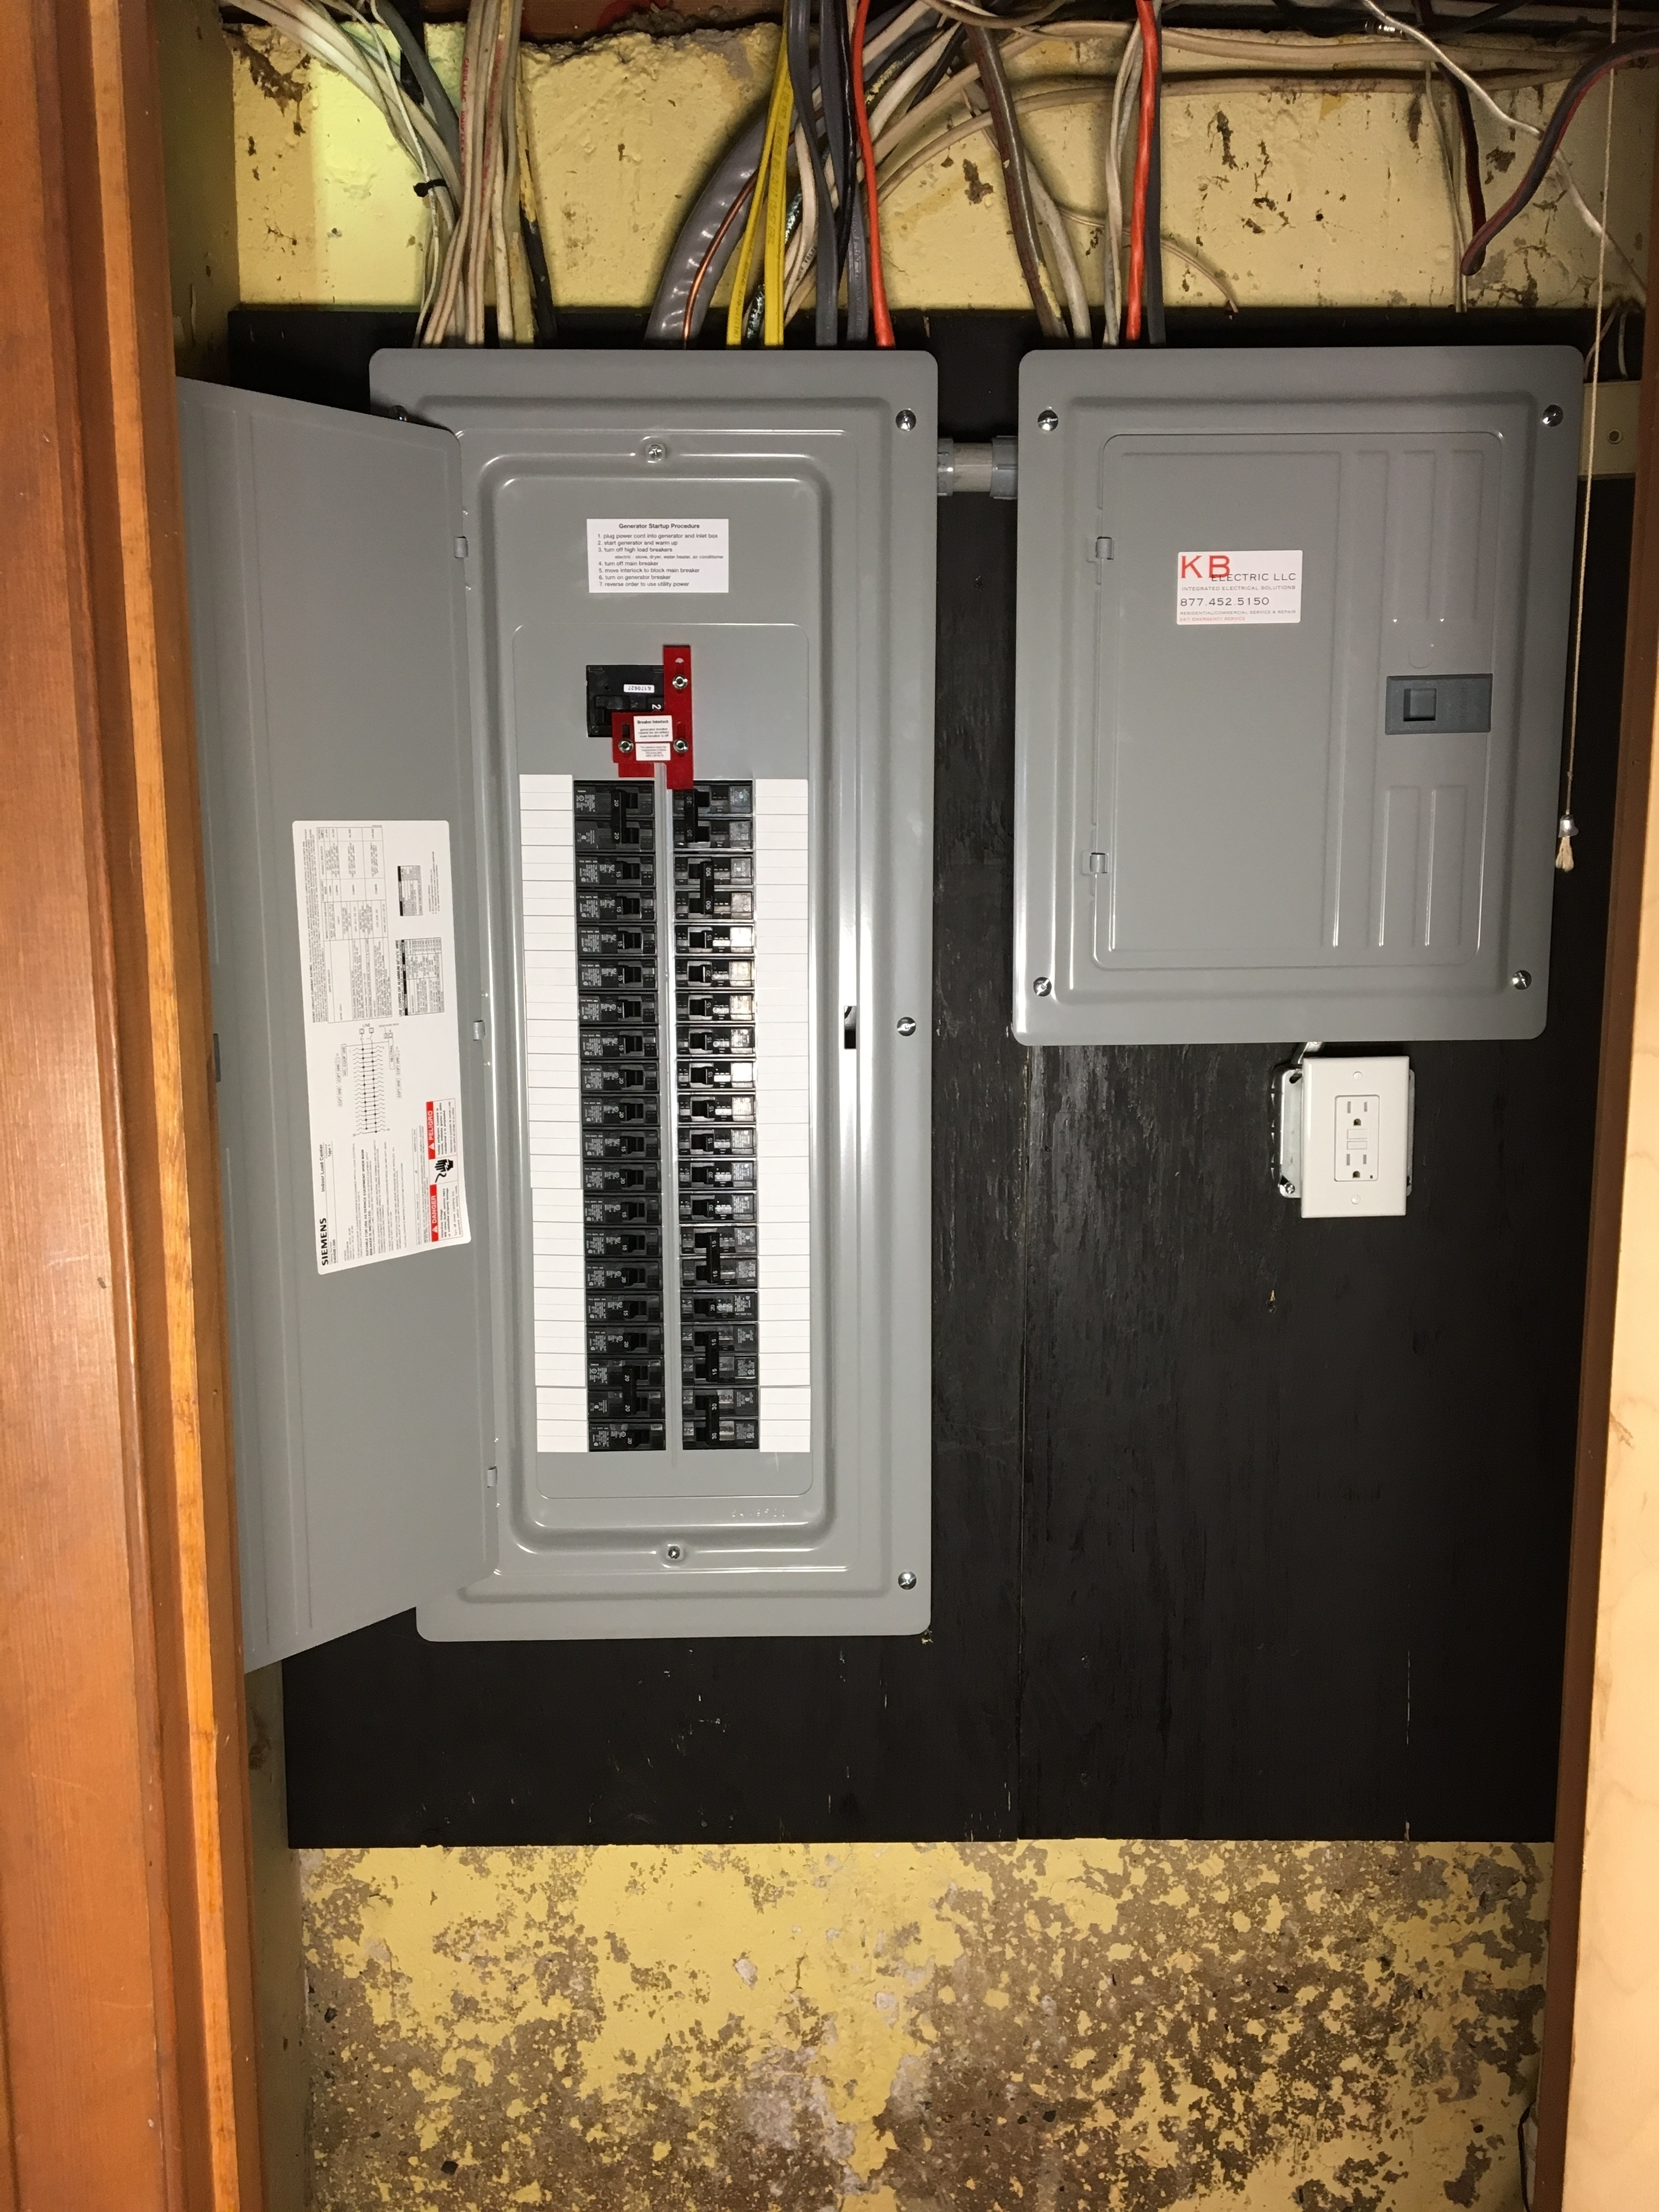 Gallery View Our Work Wiring Generator Power Inlet Box 200amp Service Panel